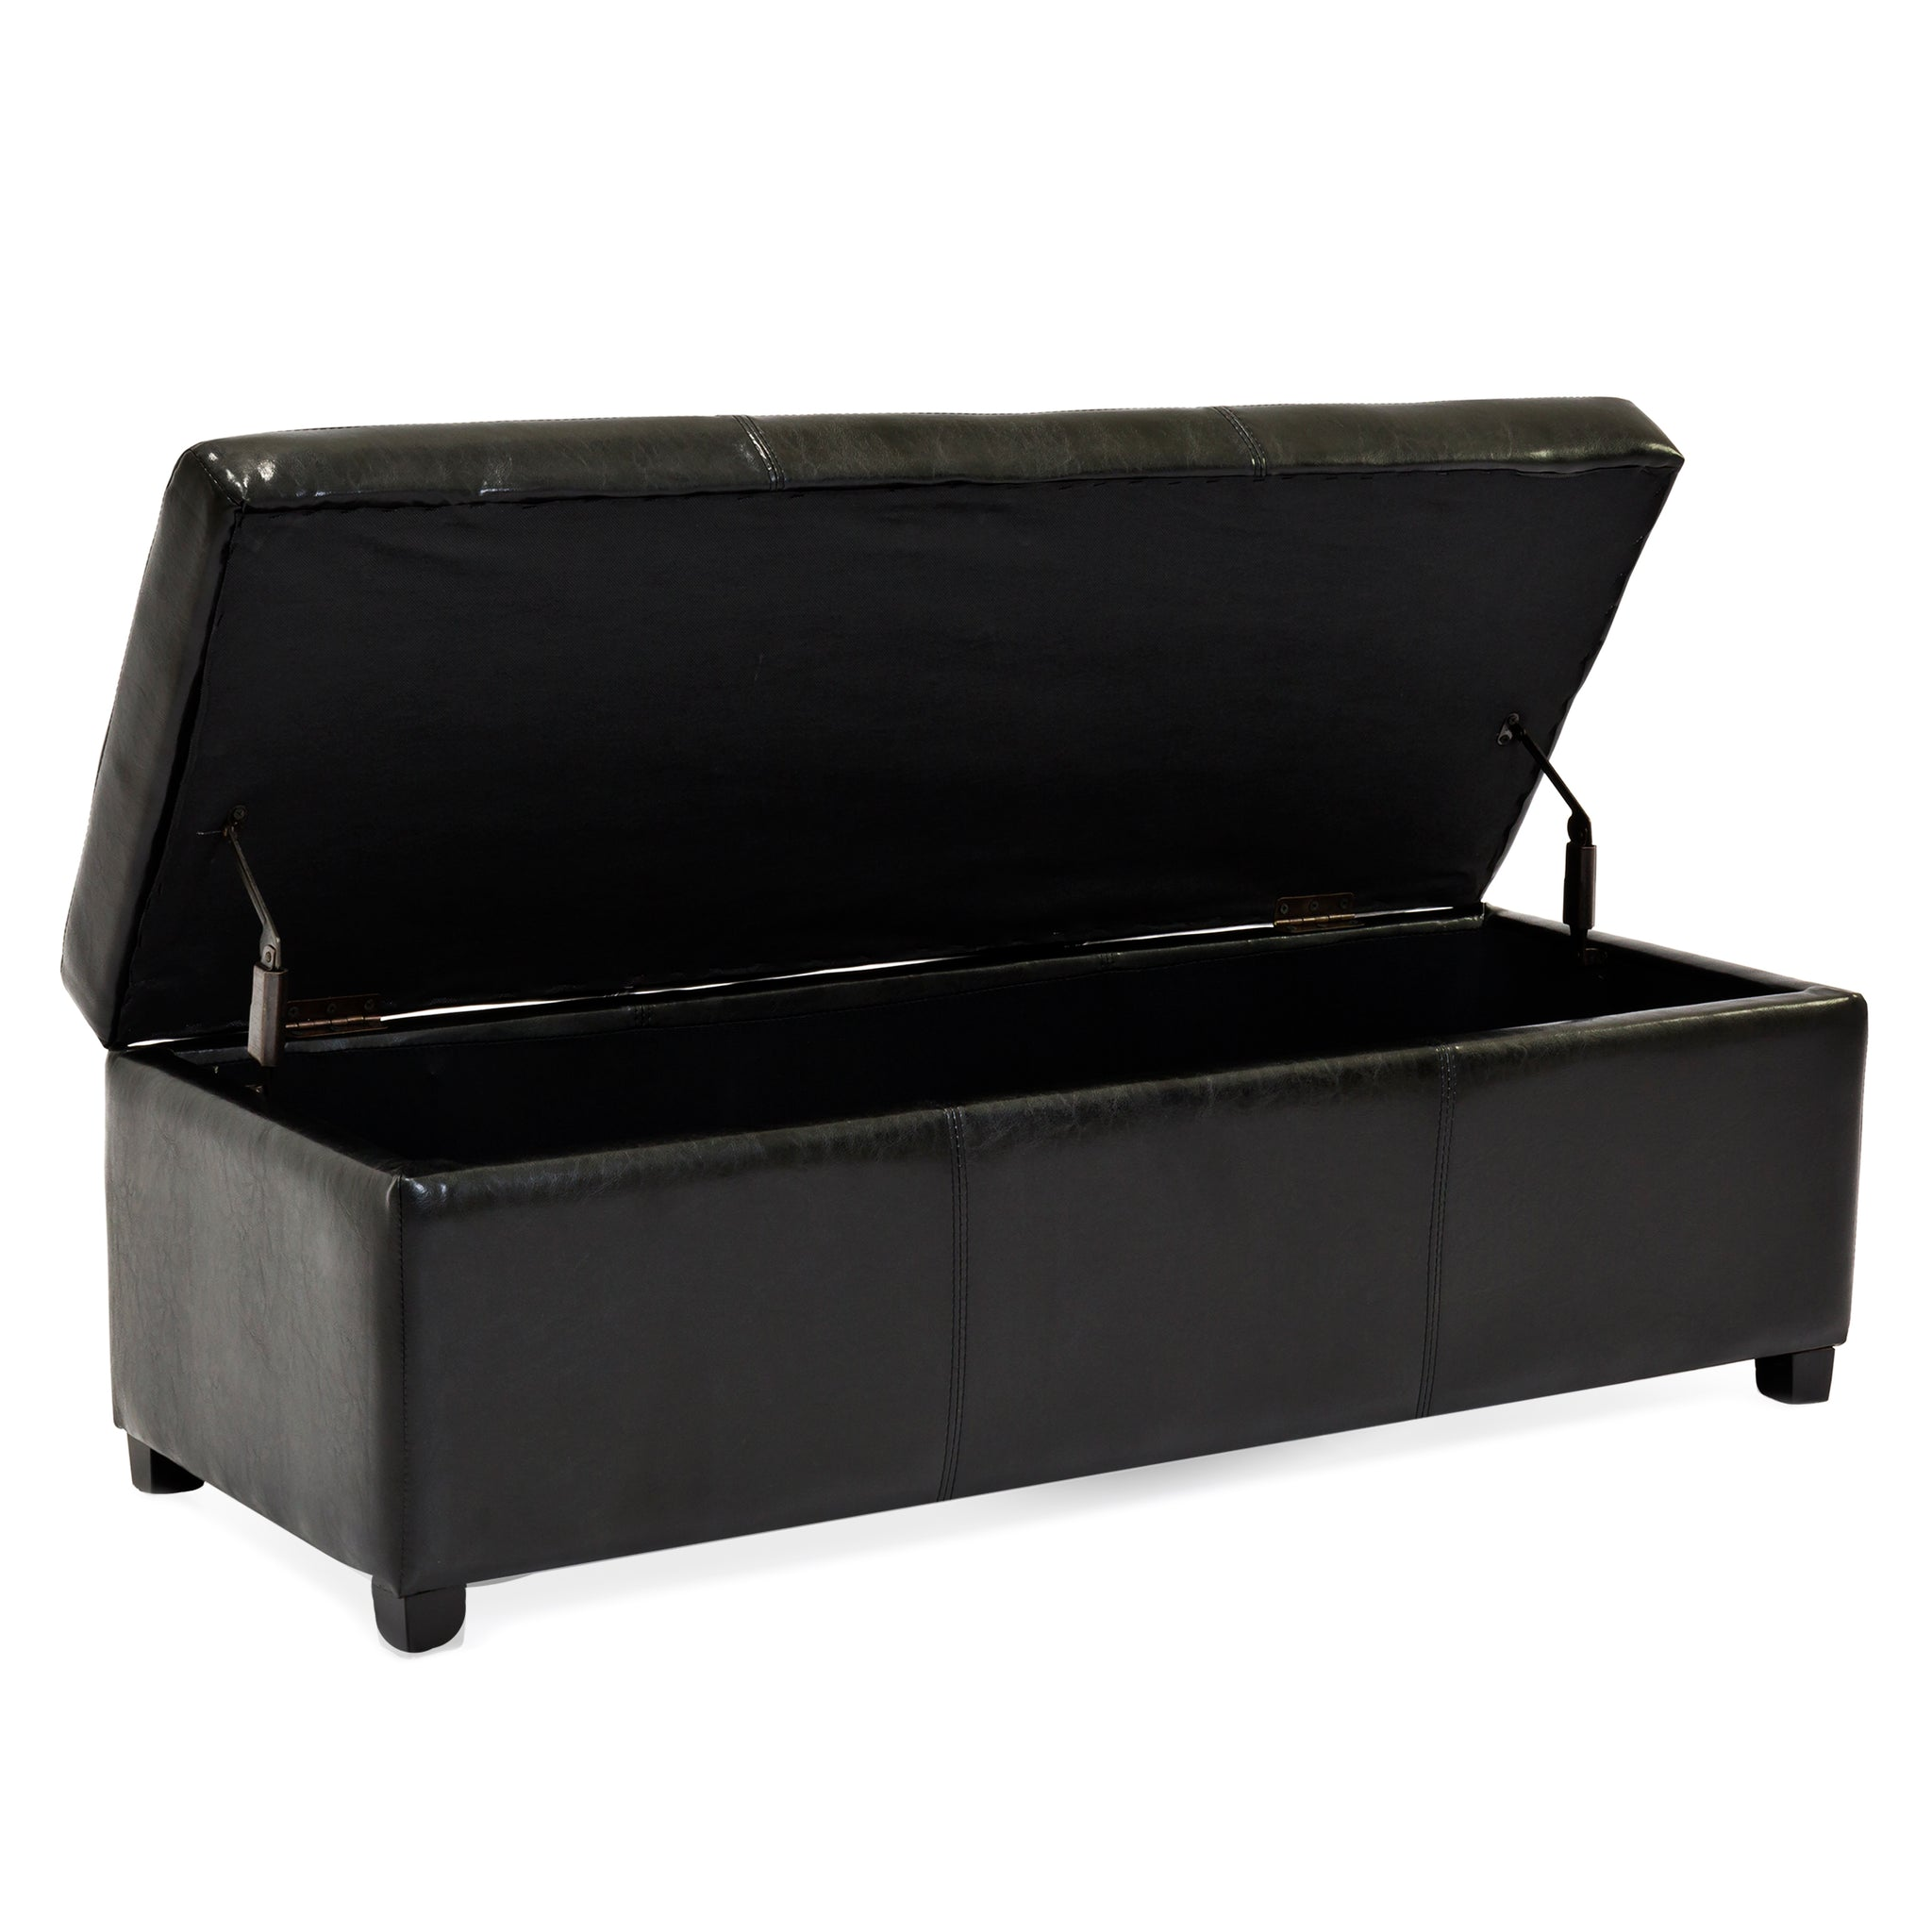 Large Rectangular Leather Storage Ottoman Bench Black Best Choice Products